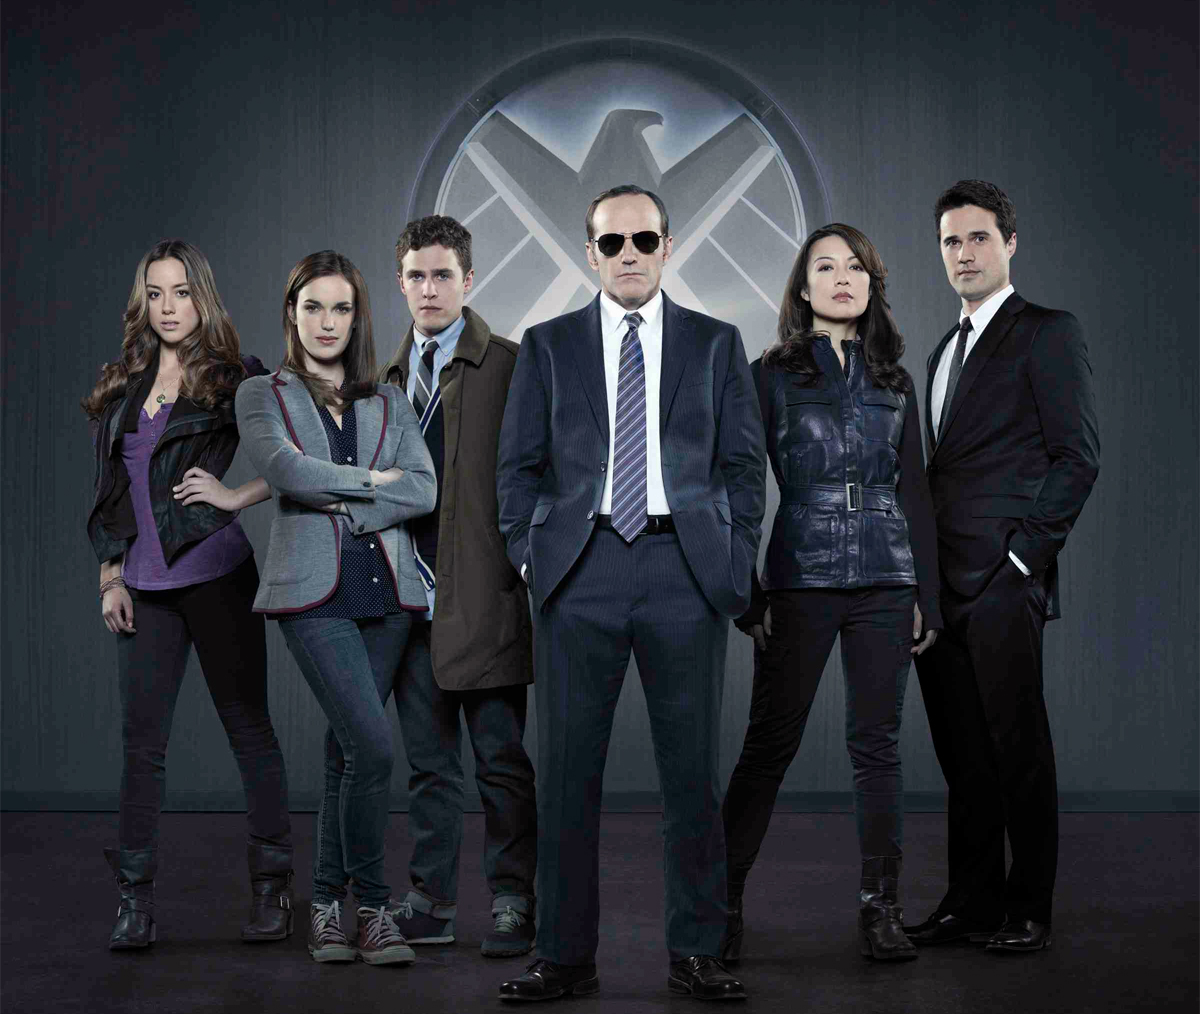 Agents of Shield promo shot